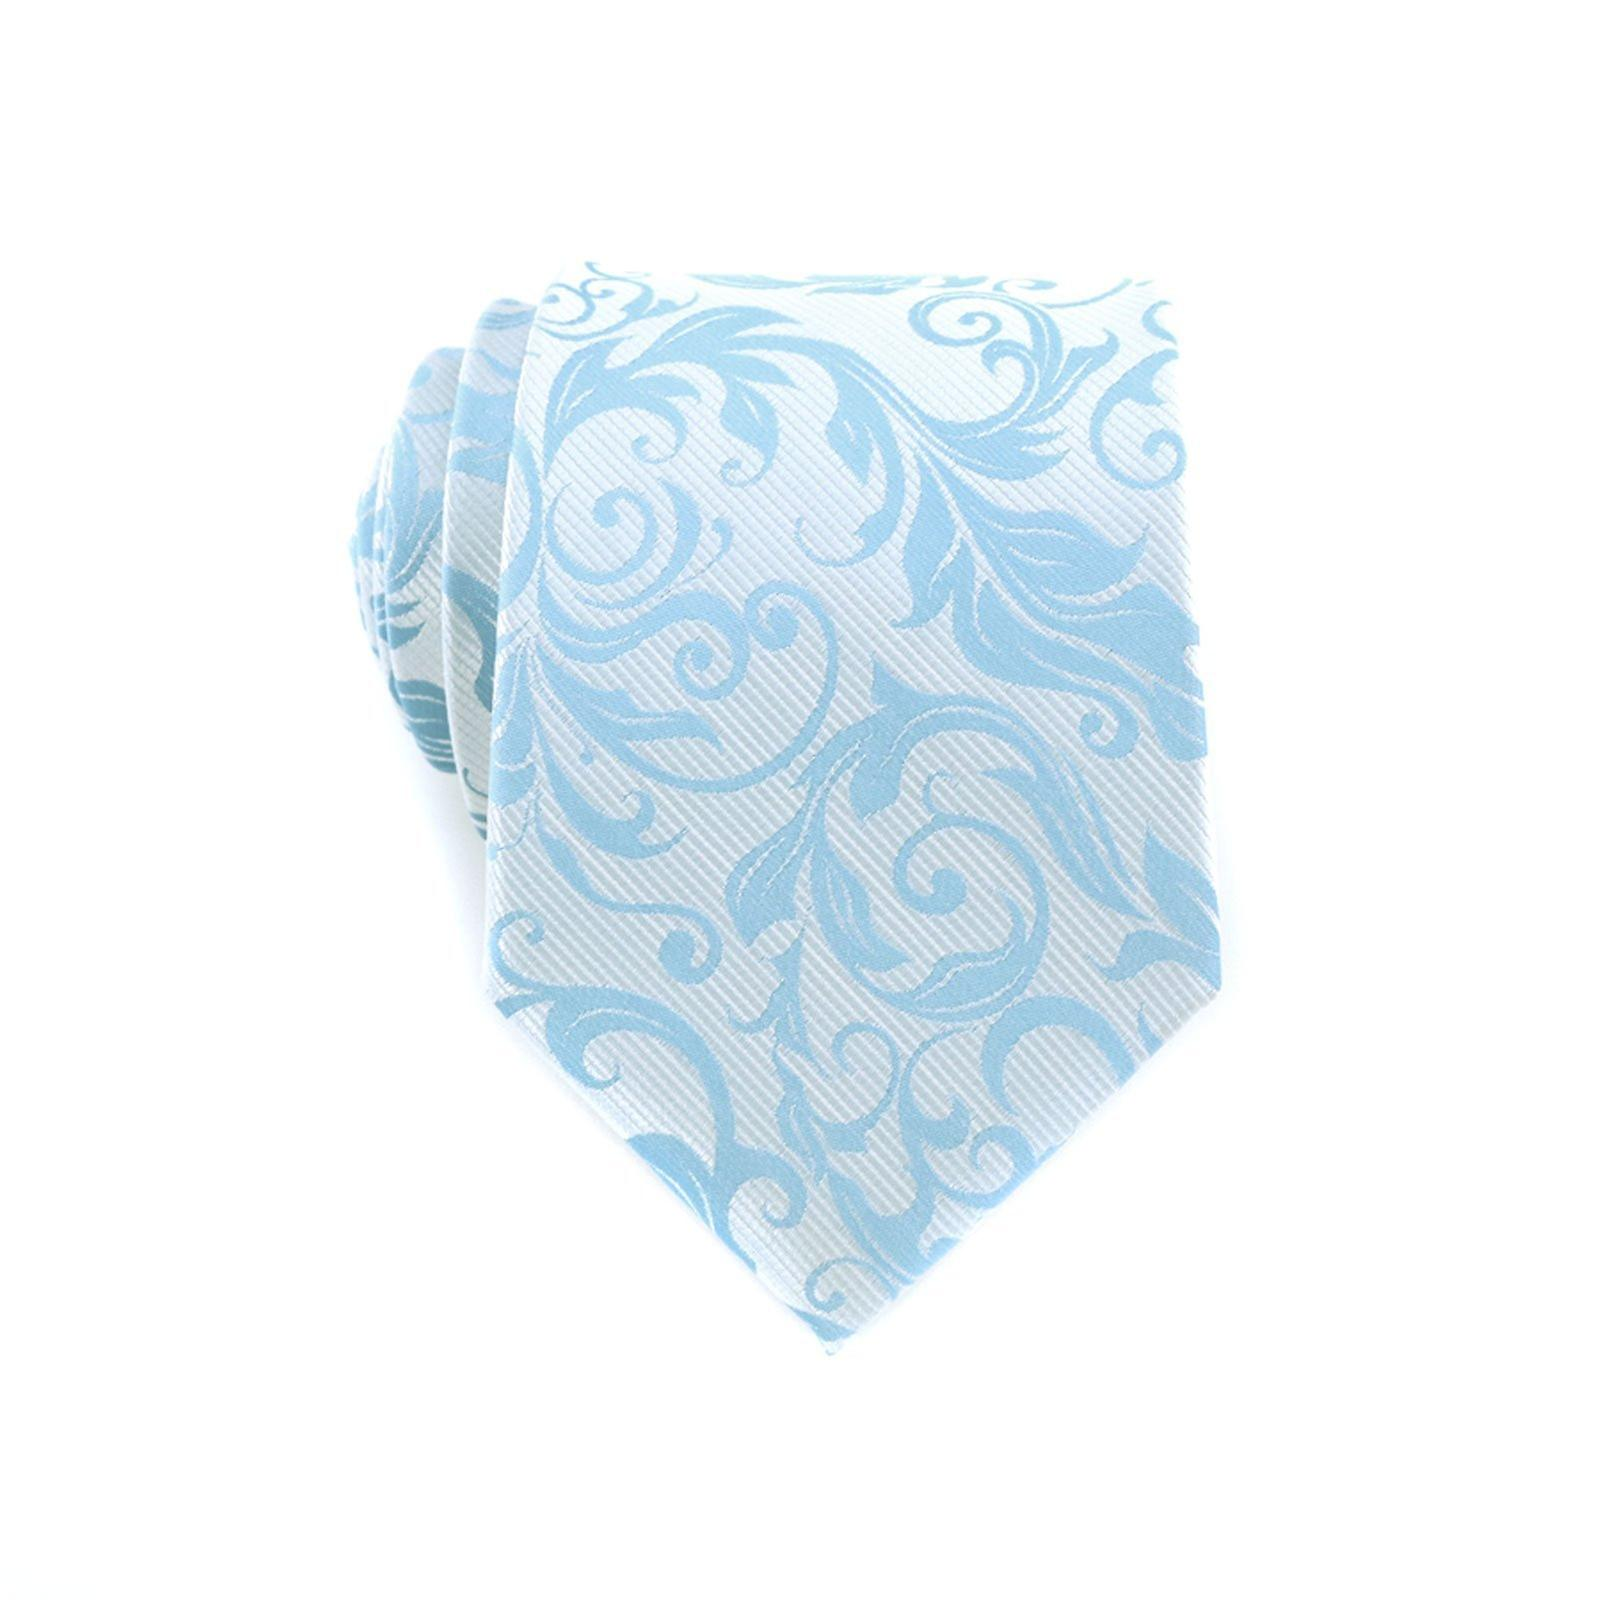 Baby blue floral paisley pattern tie & pocket square